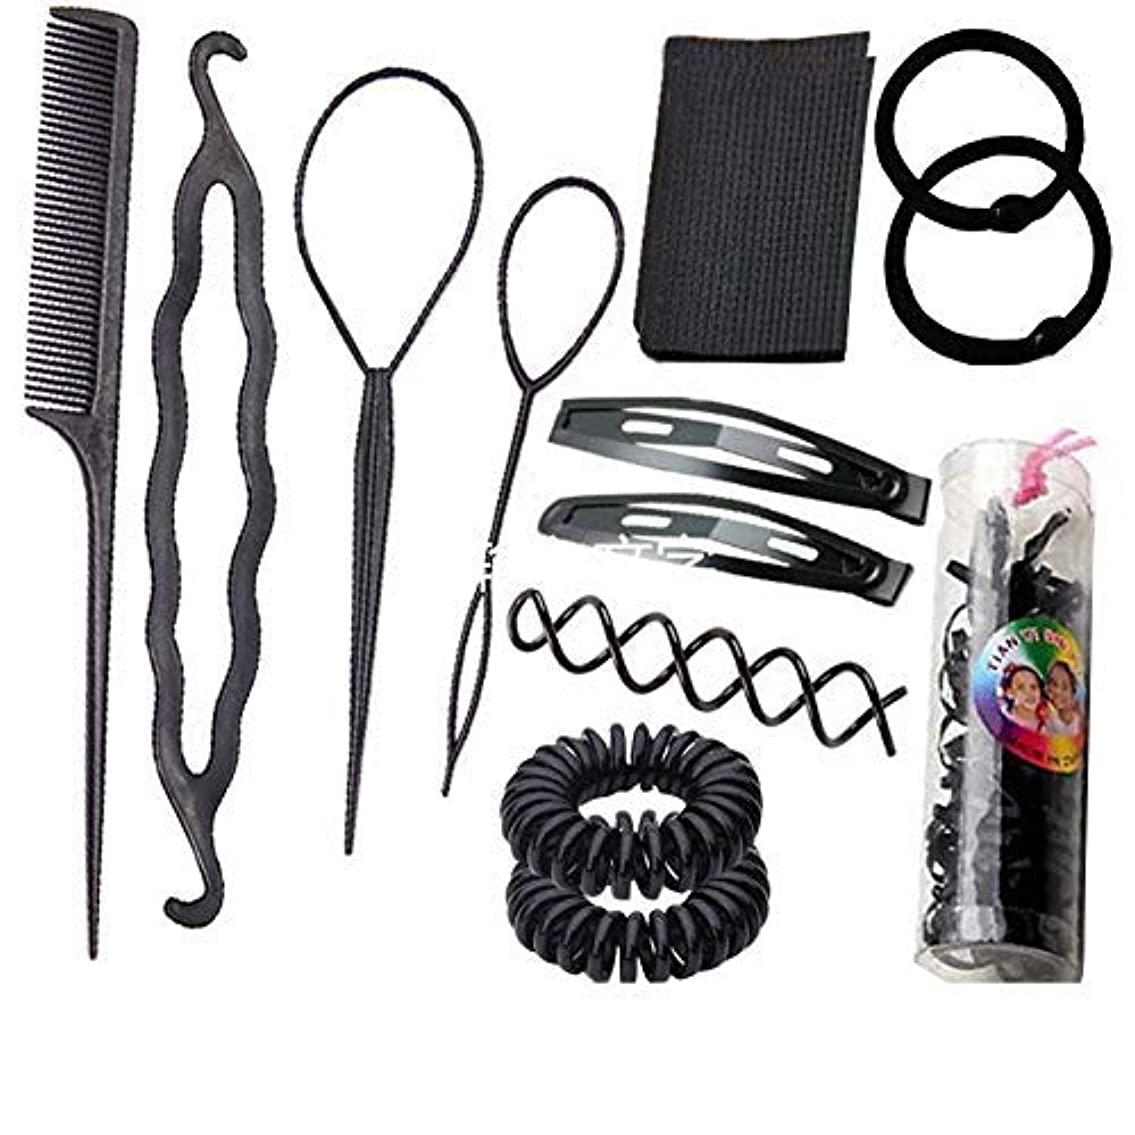 一般説明する受け入れ1 Set Black 13 in 1 Hair Style Making Accessories Kits Hair Comb Metal Hairpins Hair Tools Hair Ropes Fringes...